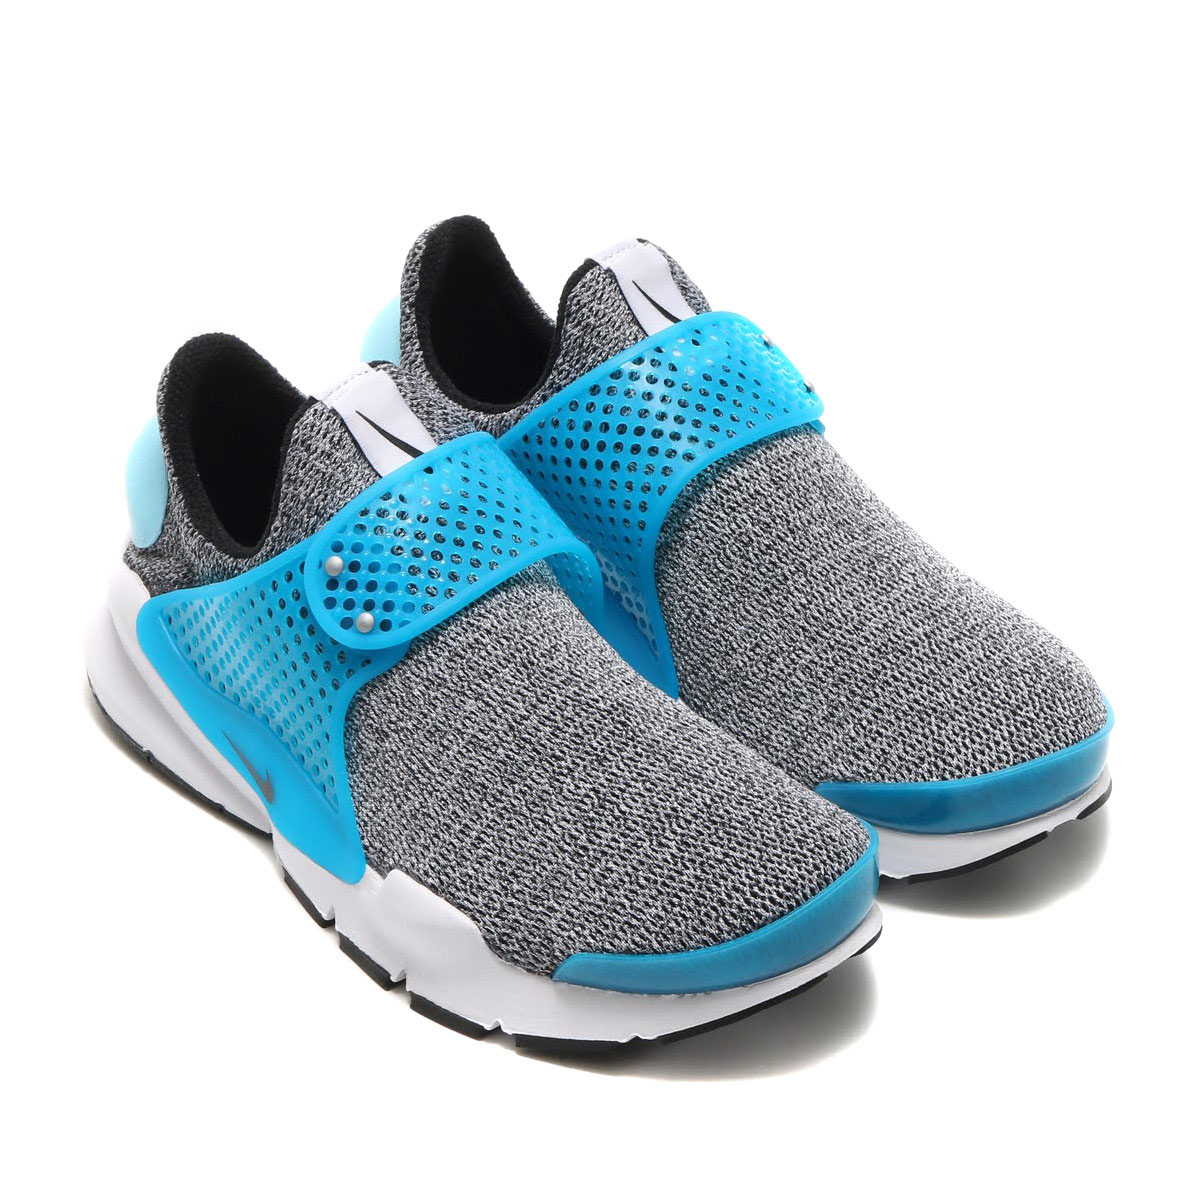 NIKE WMNS SOCK DART SE(ナイキ ウィメンズ ソックダート SE)(BLACK/BLACK-BLUE LAGOON-WHITE-STILL BLUE-METRO GREY)【メンズ レディース スニーカー】17SP-I